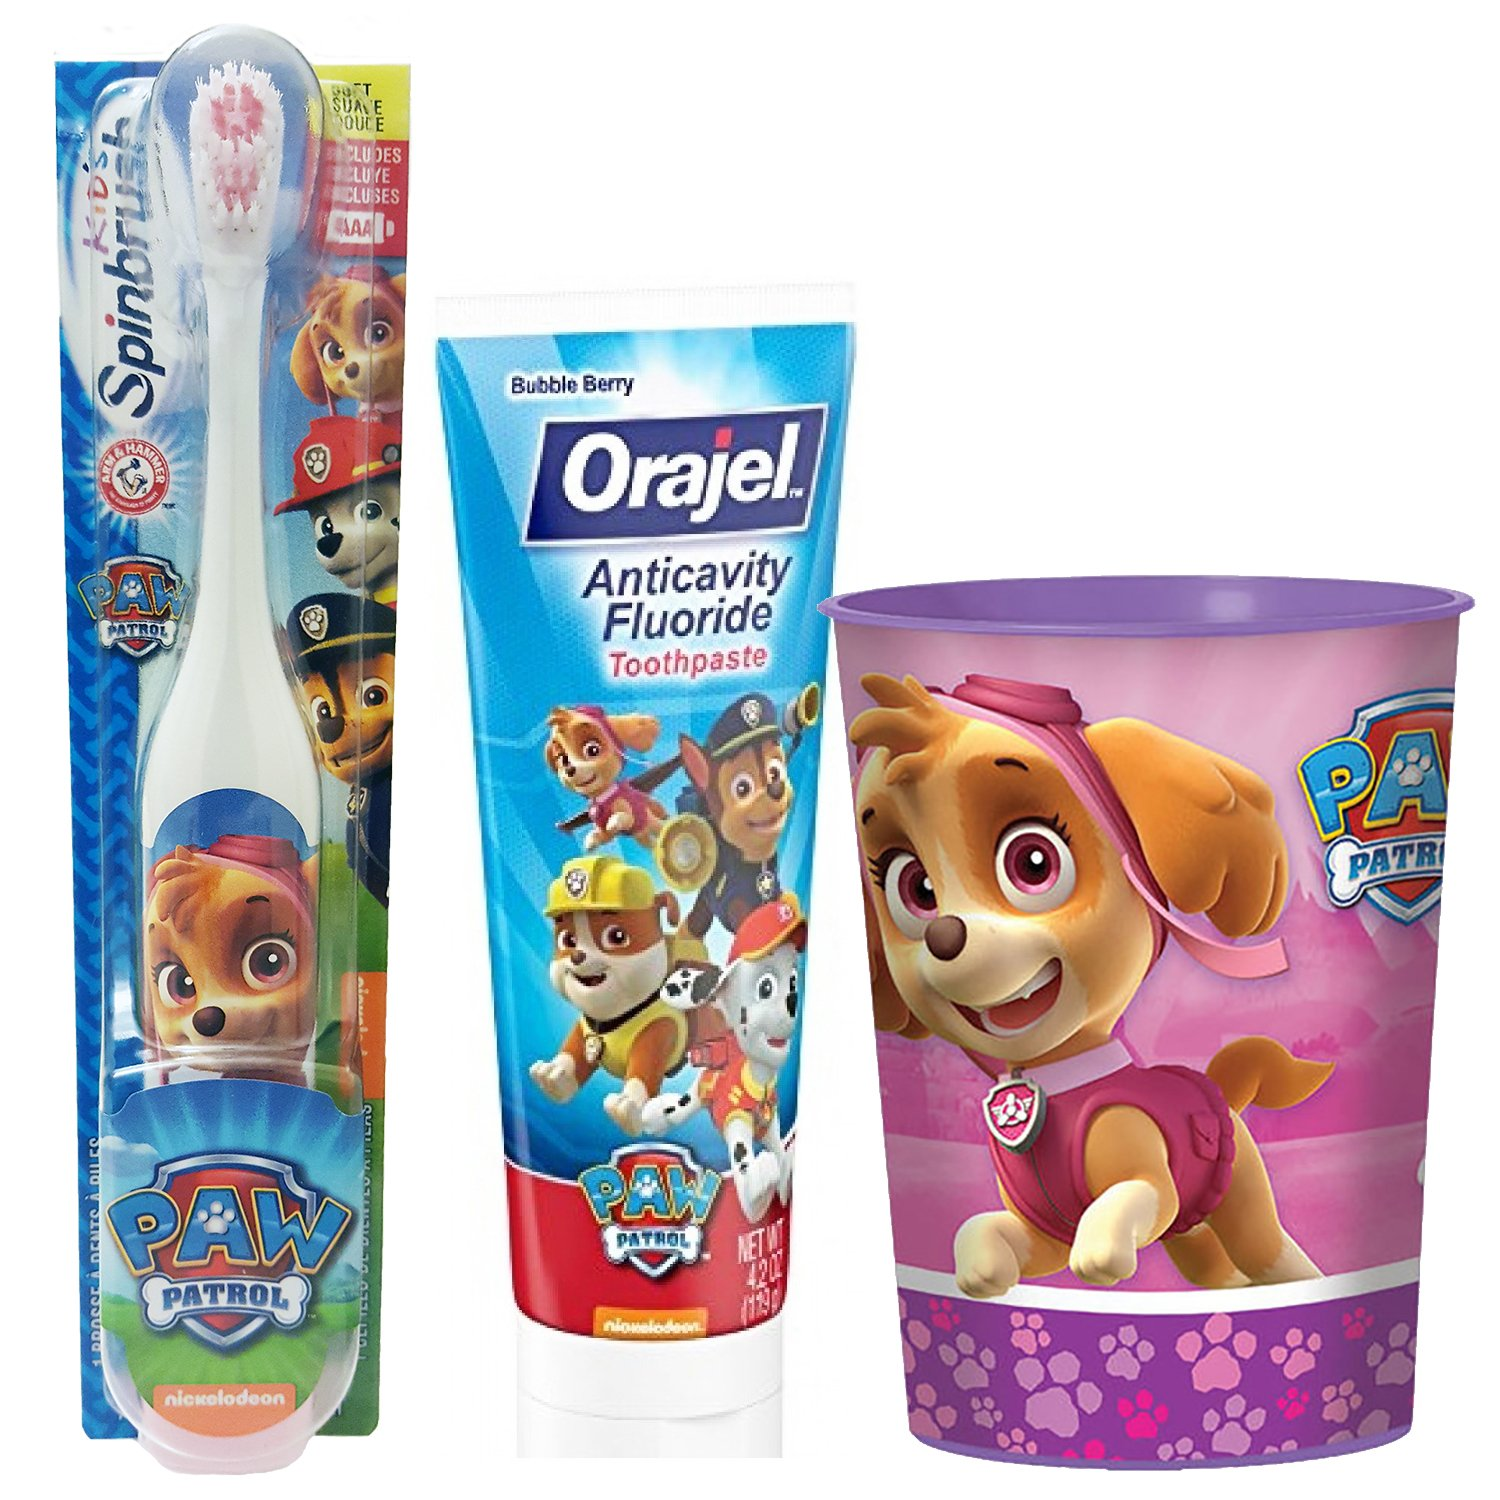 Paw Patrol Skye Toothbrush & Toothpaste Bundle: 3 Items - Spinbrush Toothbrush, Orajel Bubble Berry Toothpaste, Kids Character Rinse Cup